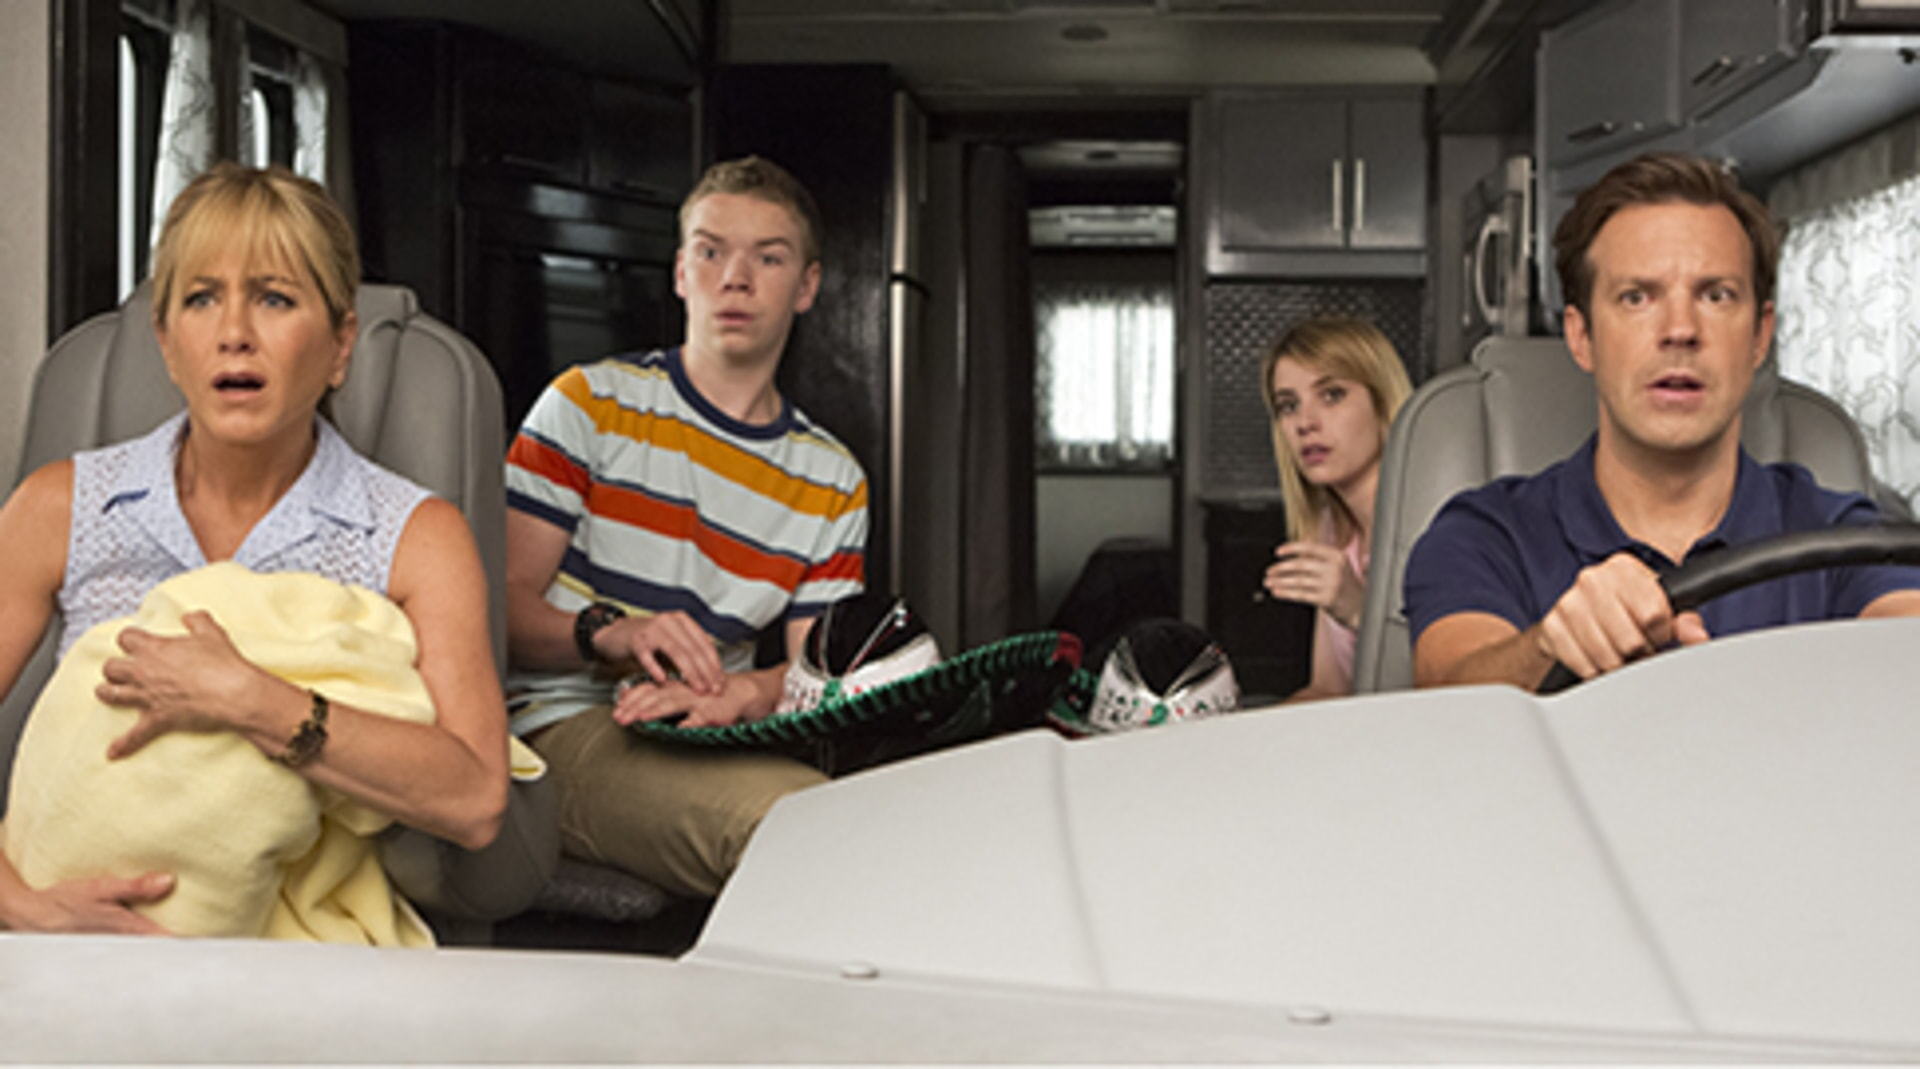 We're the Millers - Image 14